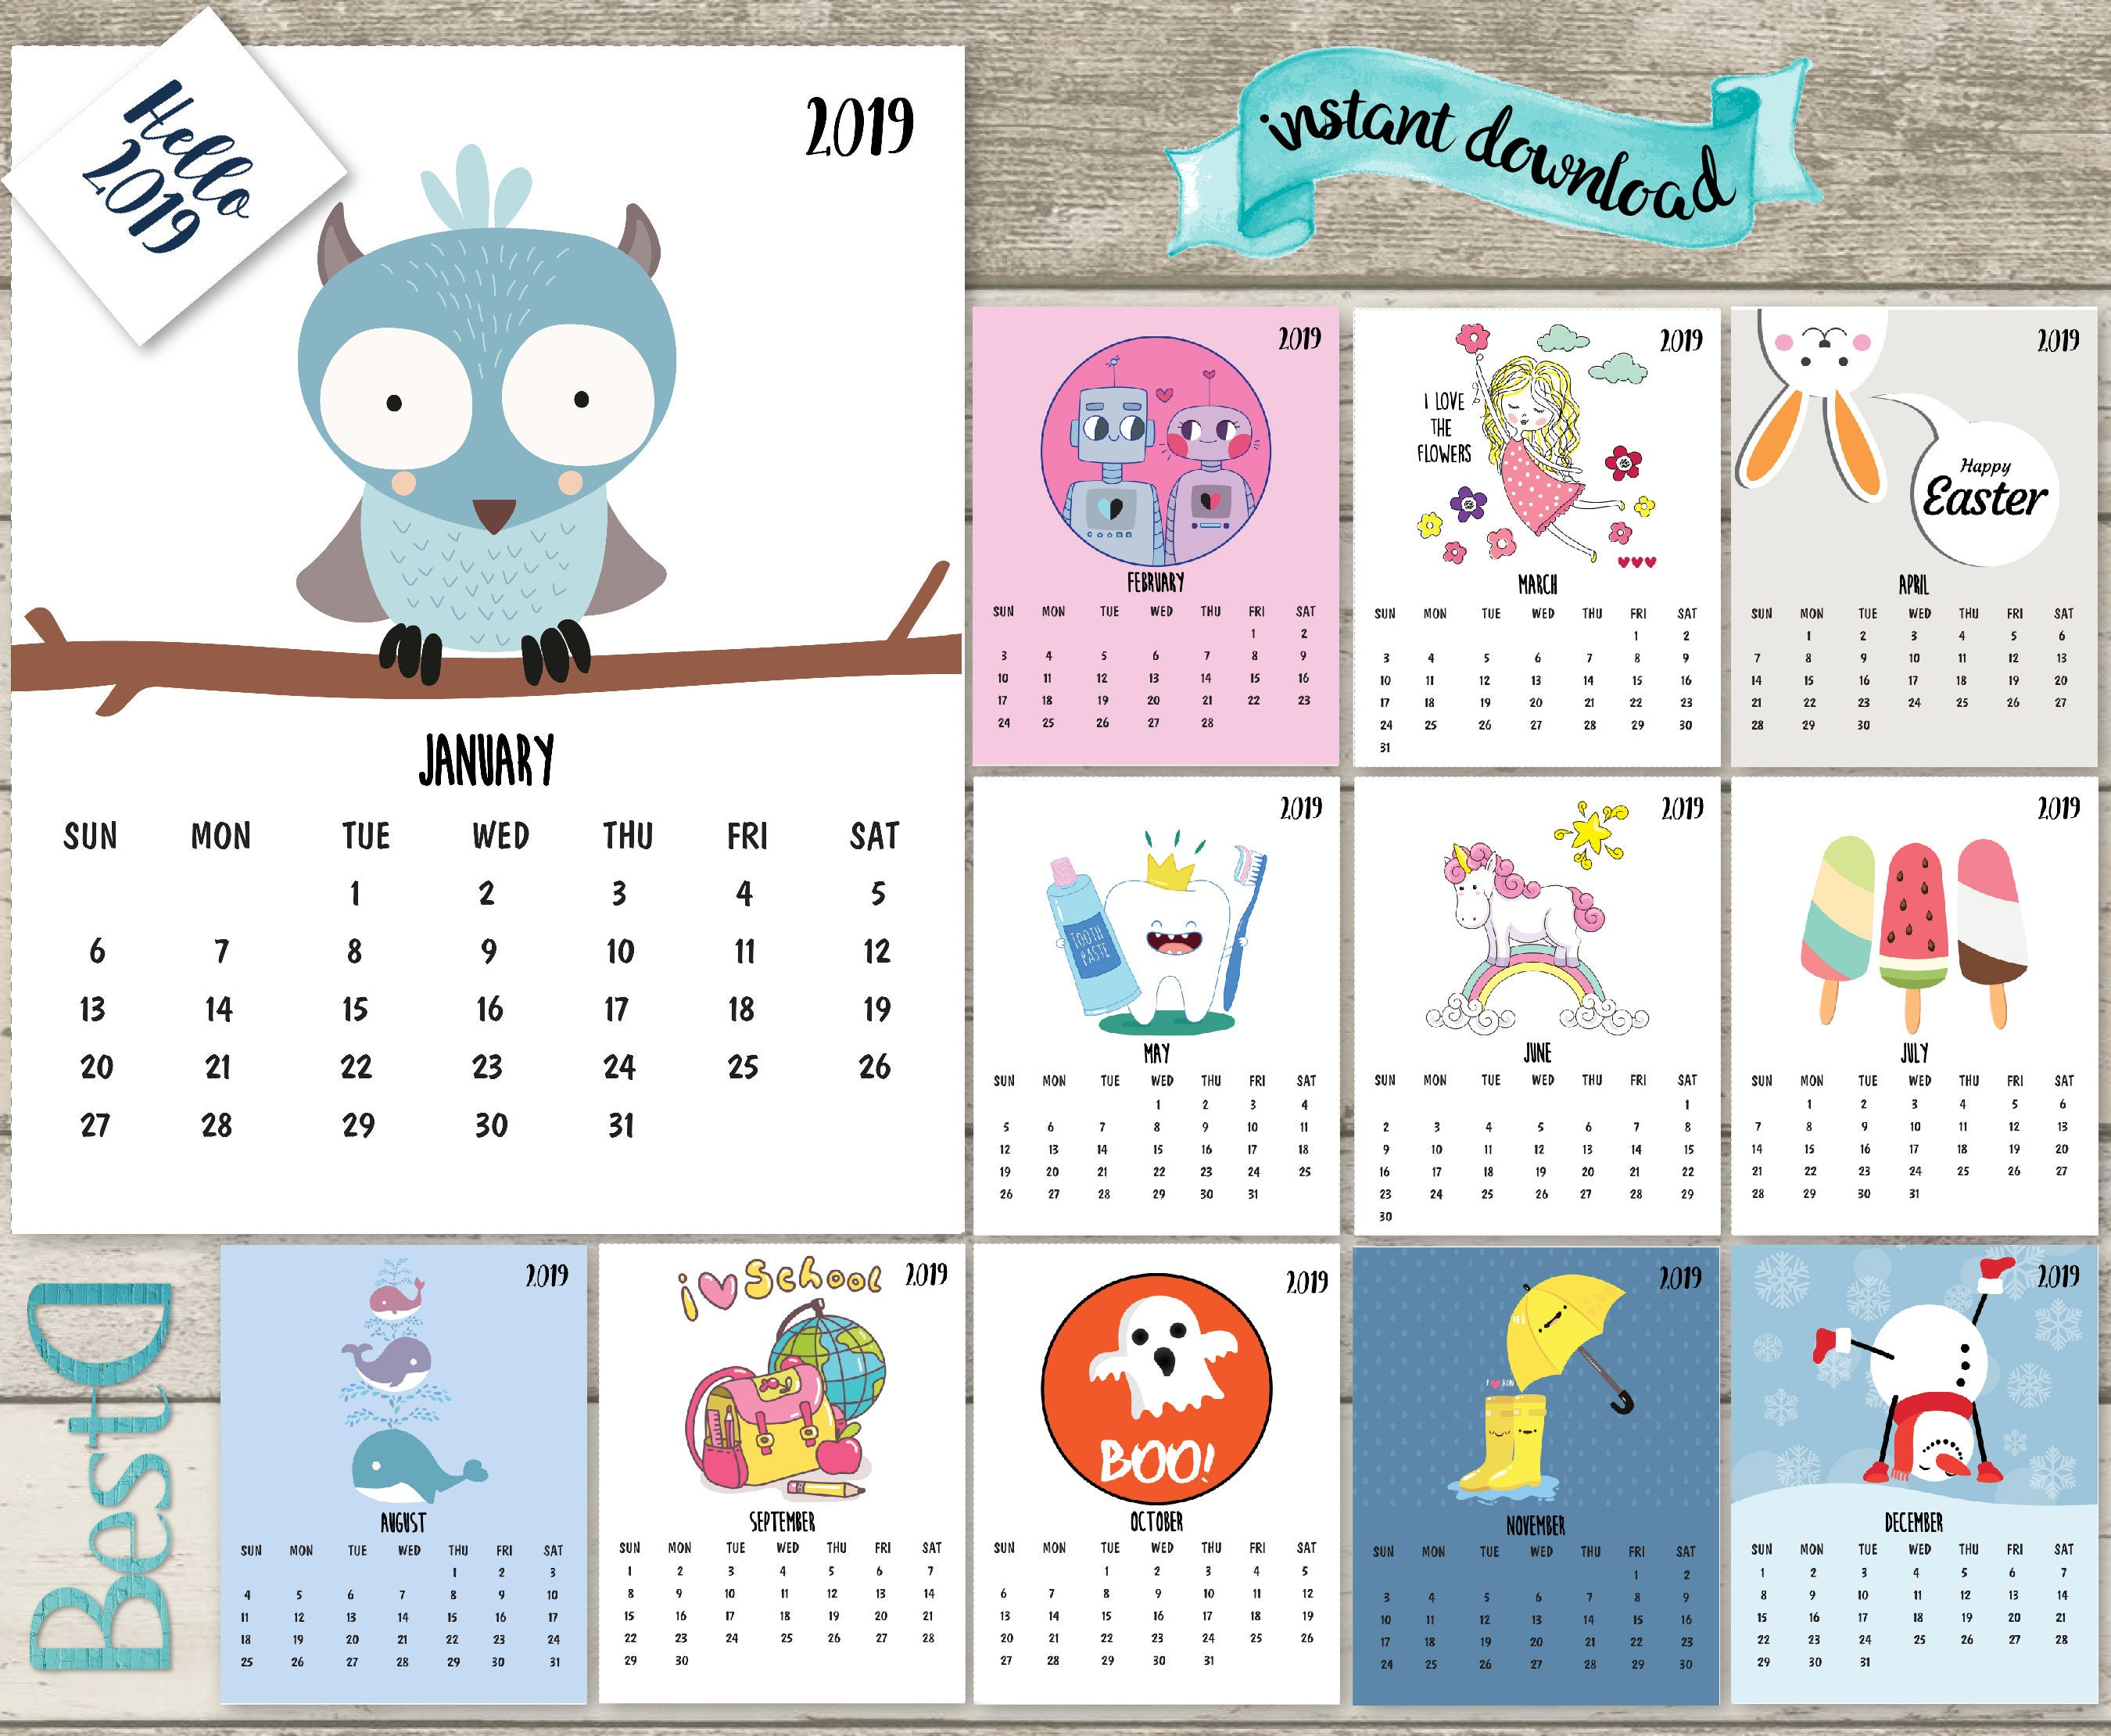 2019-2018 kids calendar2019 funny printable calendar13 pages | Etsy